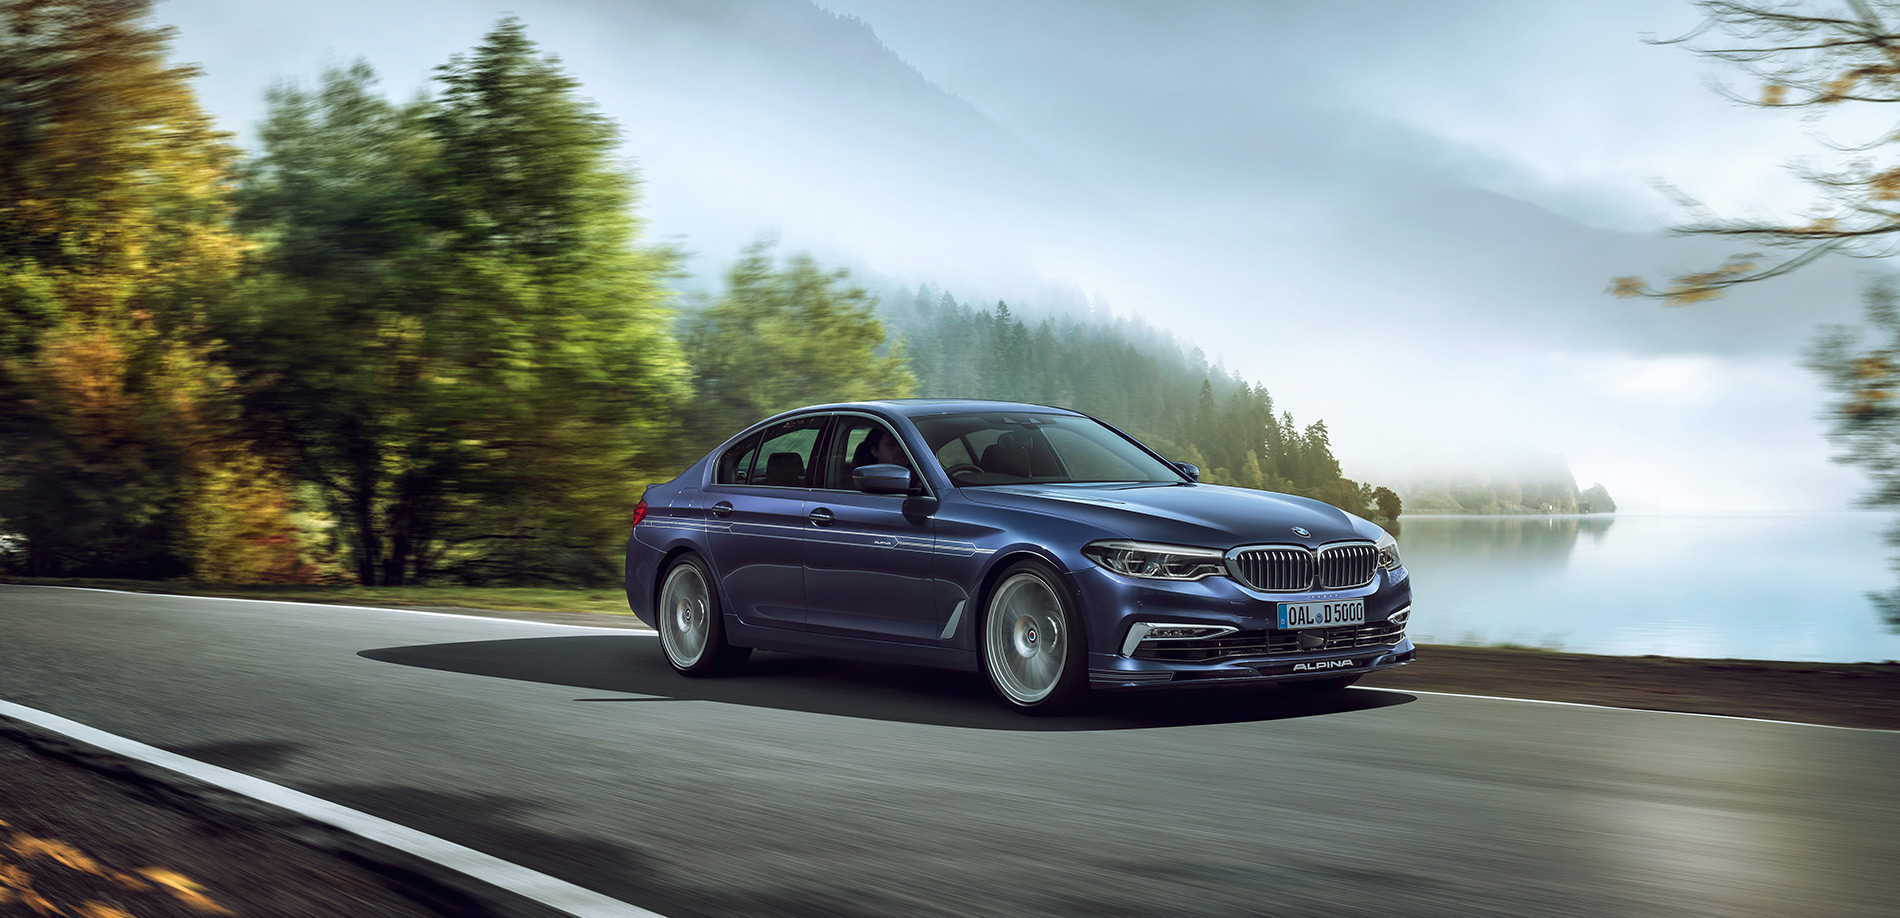 Uk Alpina Automobiles